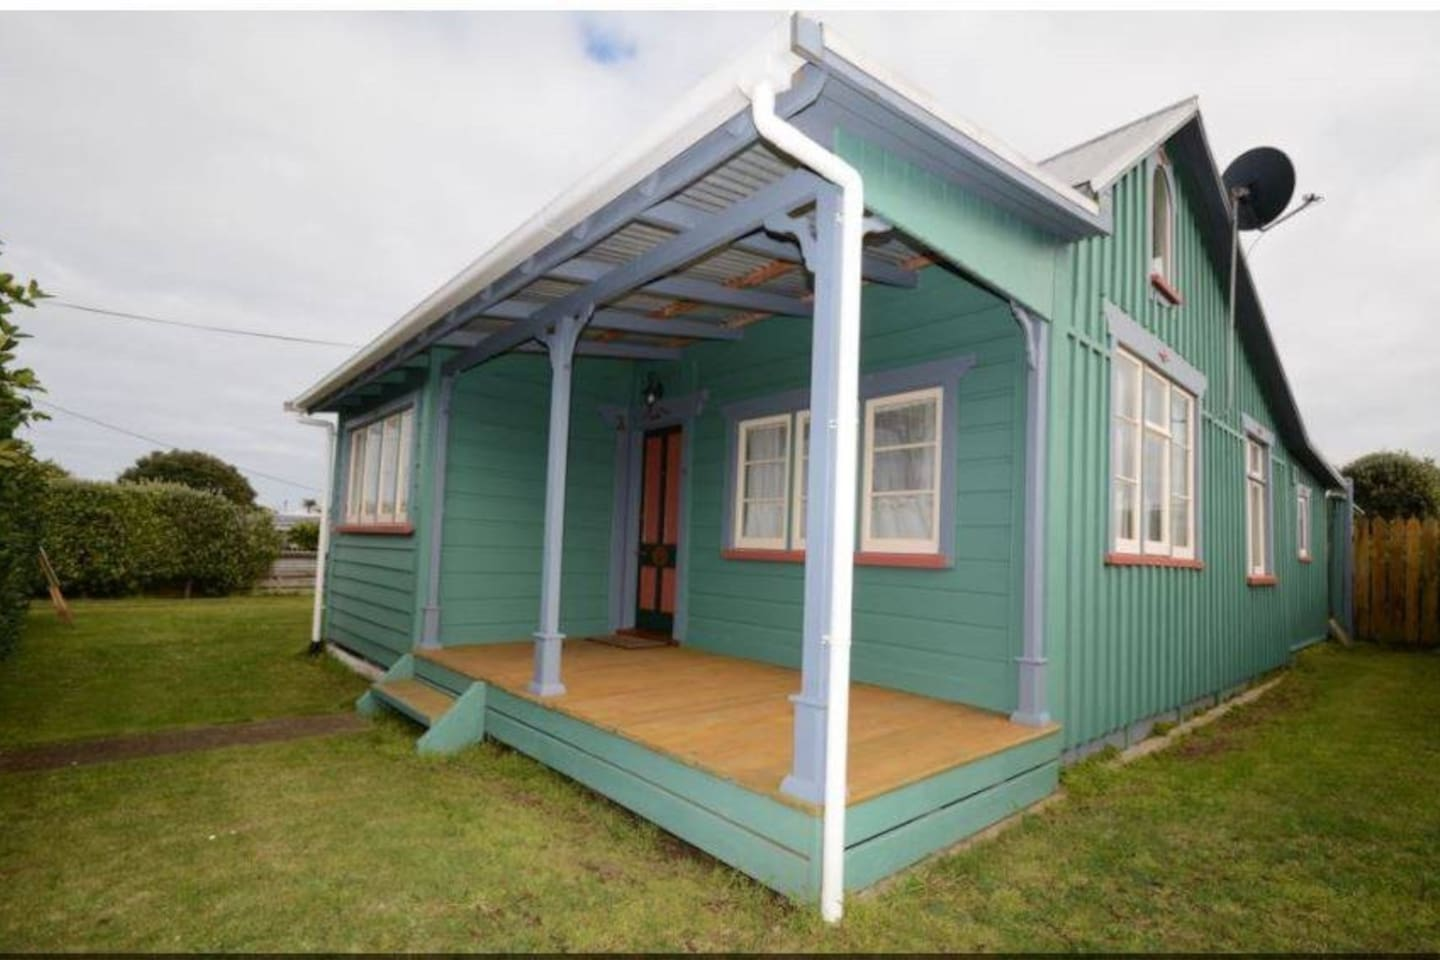 Welcome to Clare's cottage it was built in 1885 and has been fully renovated with even detail taken into consideration.